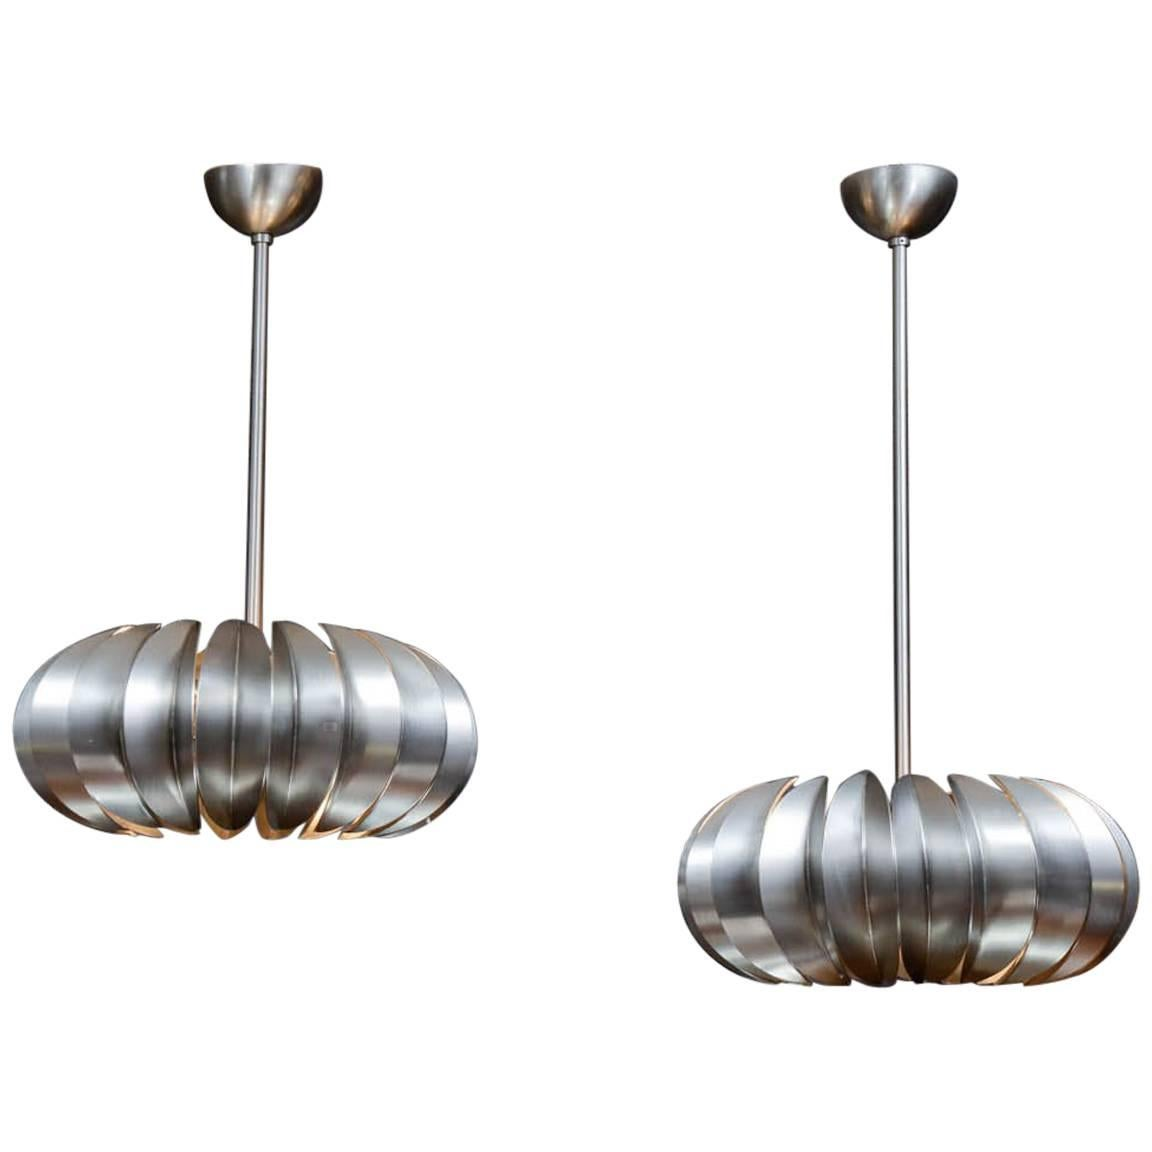 Stainless steel Chandelier at cost price